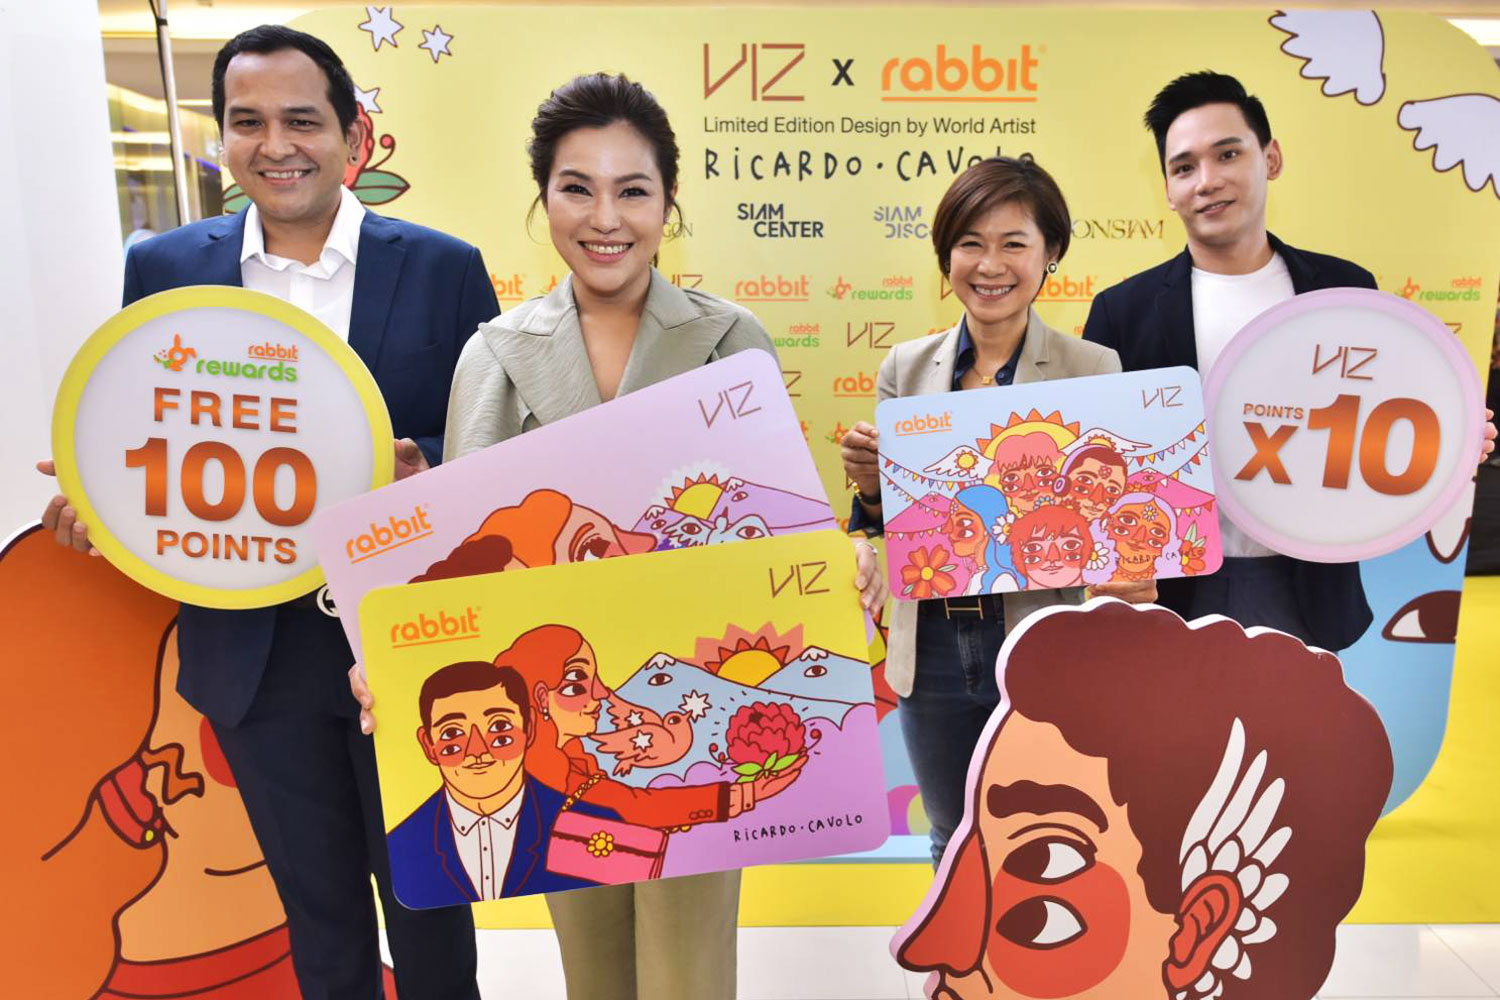 Ms Saruntorn, centre left, and Phakin Pattanavorameth, Rabbit Rewards' business development director, left, promote the VIZ Rabbit card.